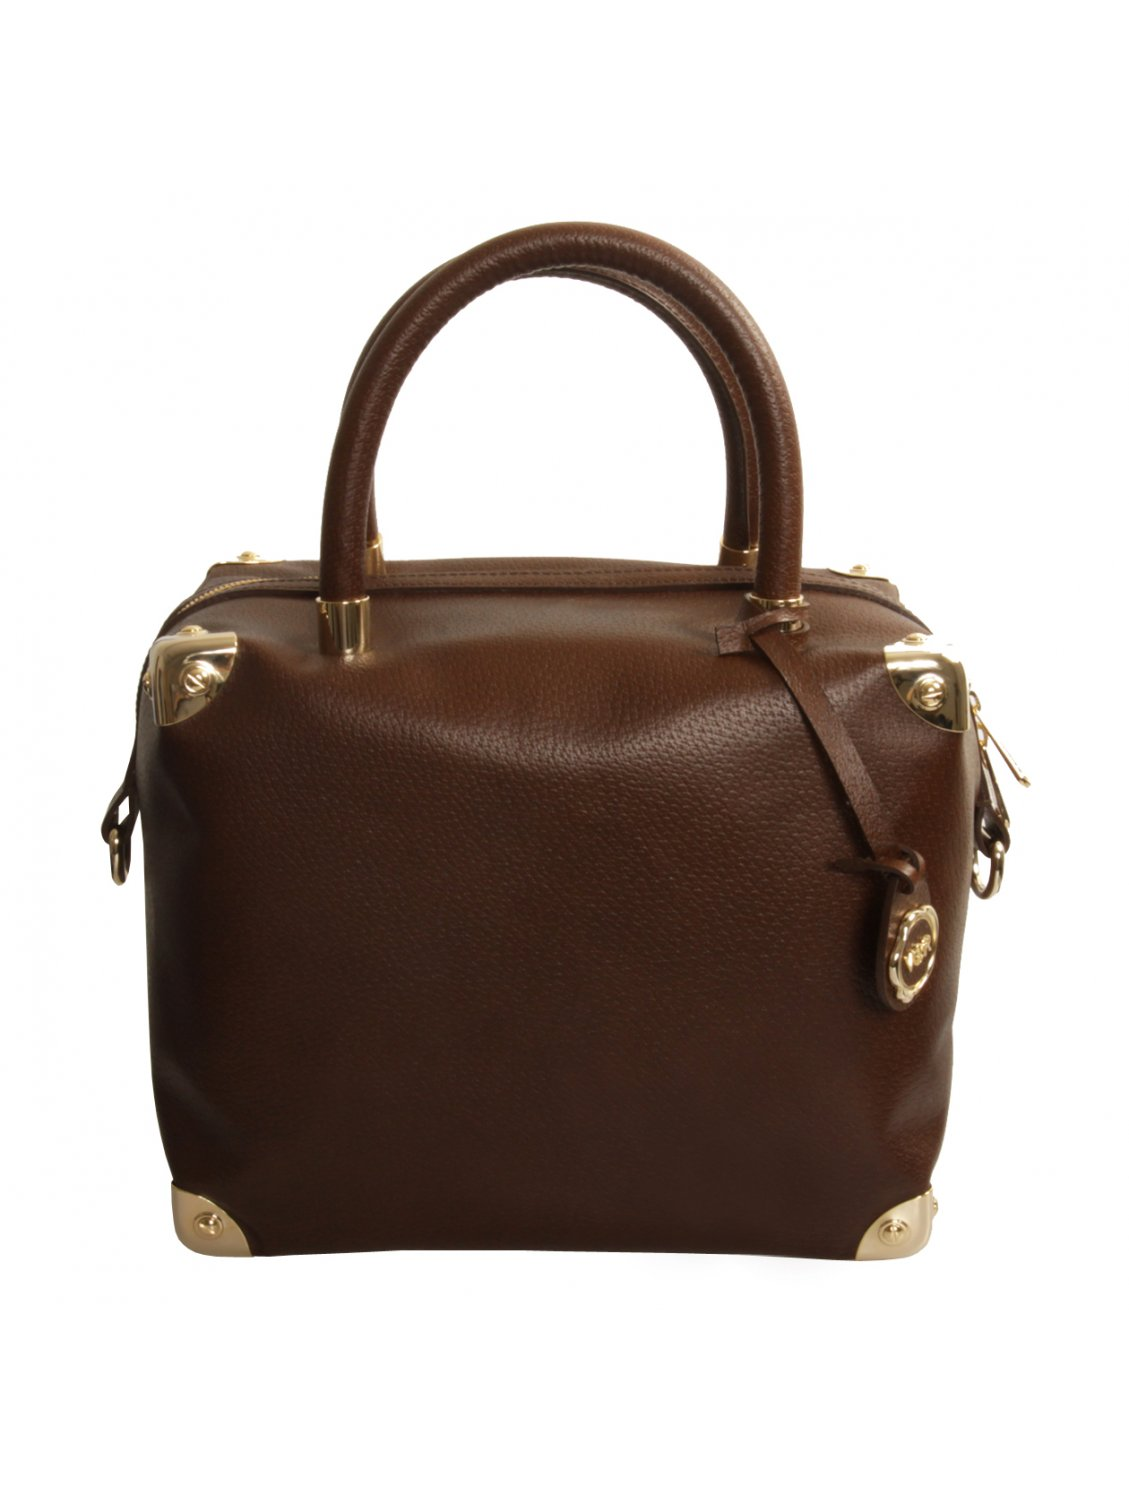 Viktor & Rolf Medium Leather Travel Bag in Brown | Lyst